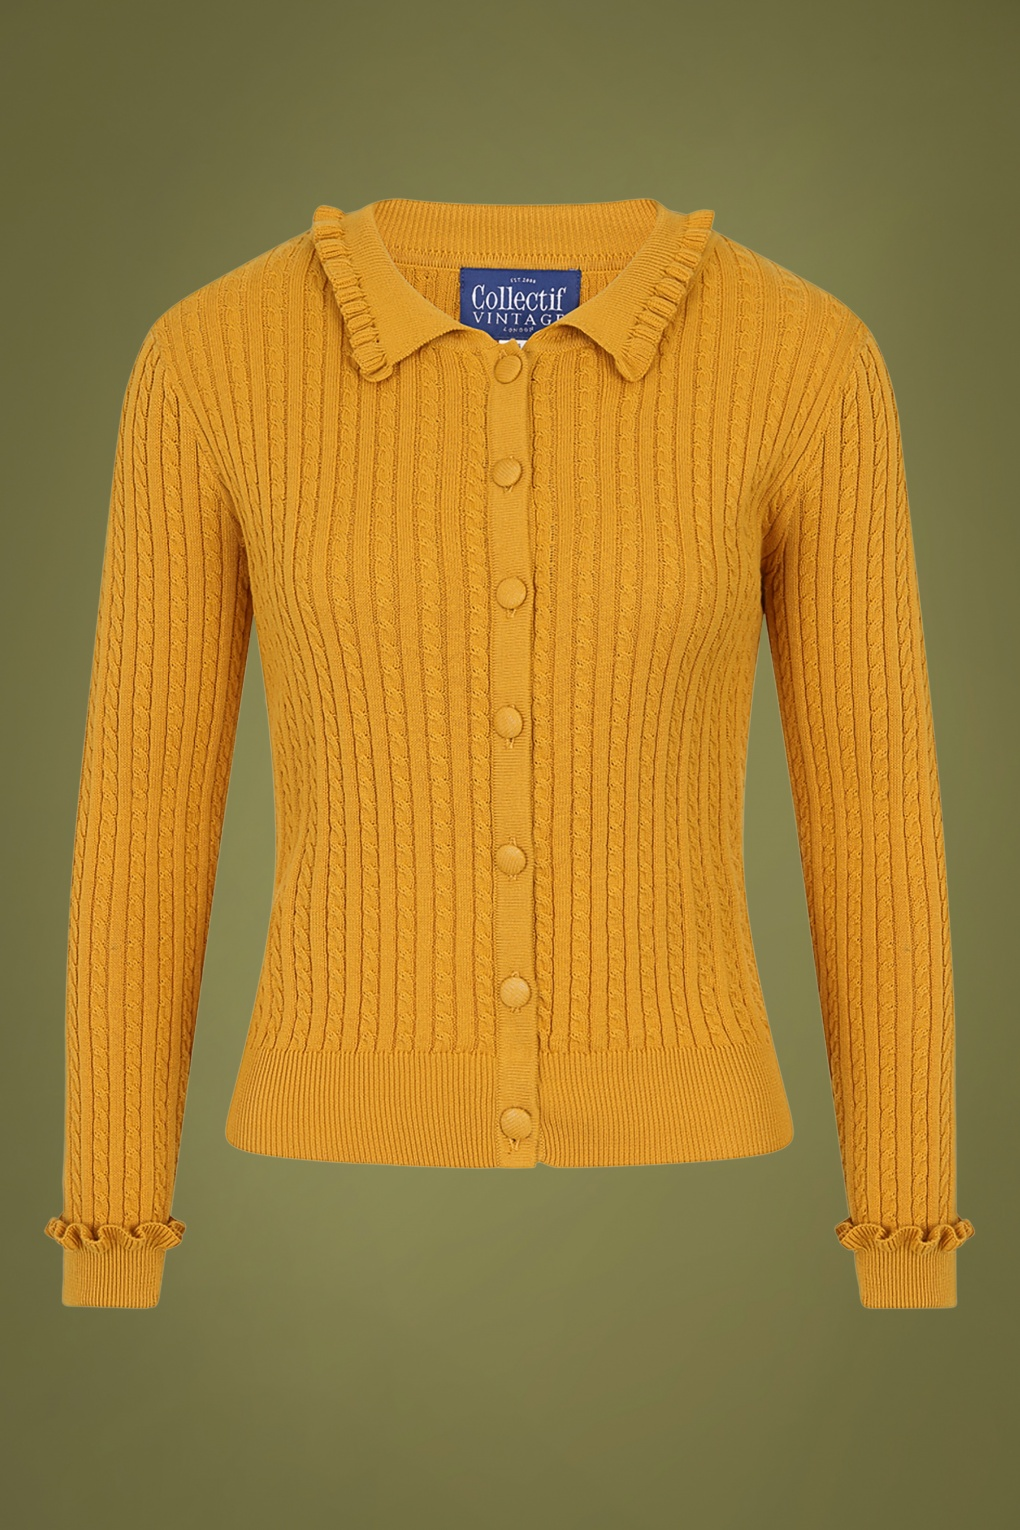 1940s Style Sweaters and Knit Tops 40s Pamela Cardigan in Mustard Yellow £51.14 AT vintagedancer.com